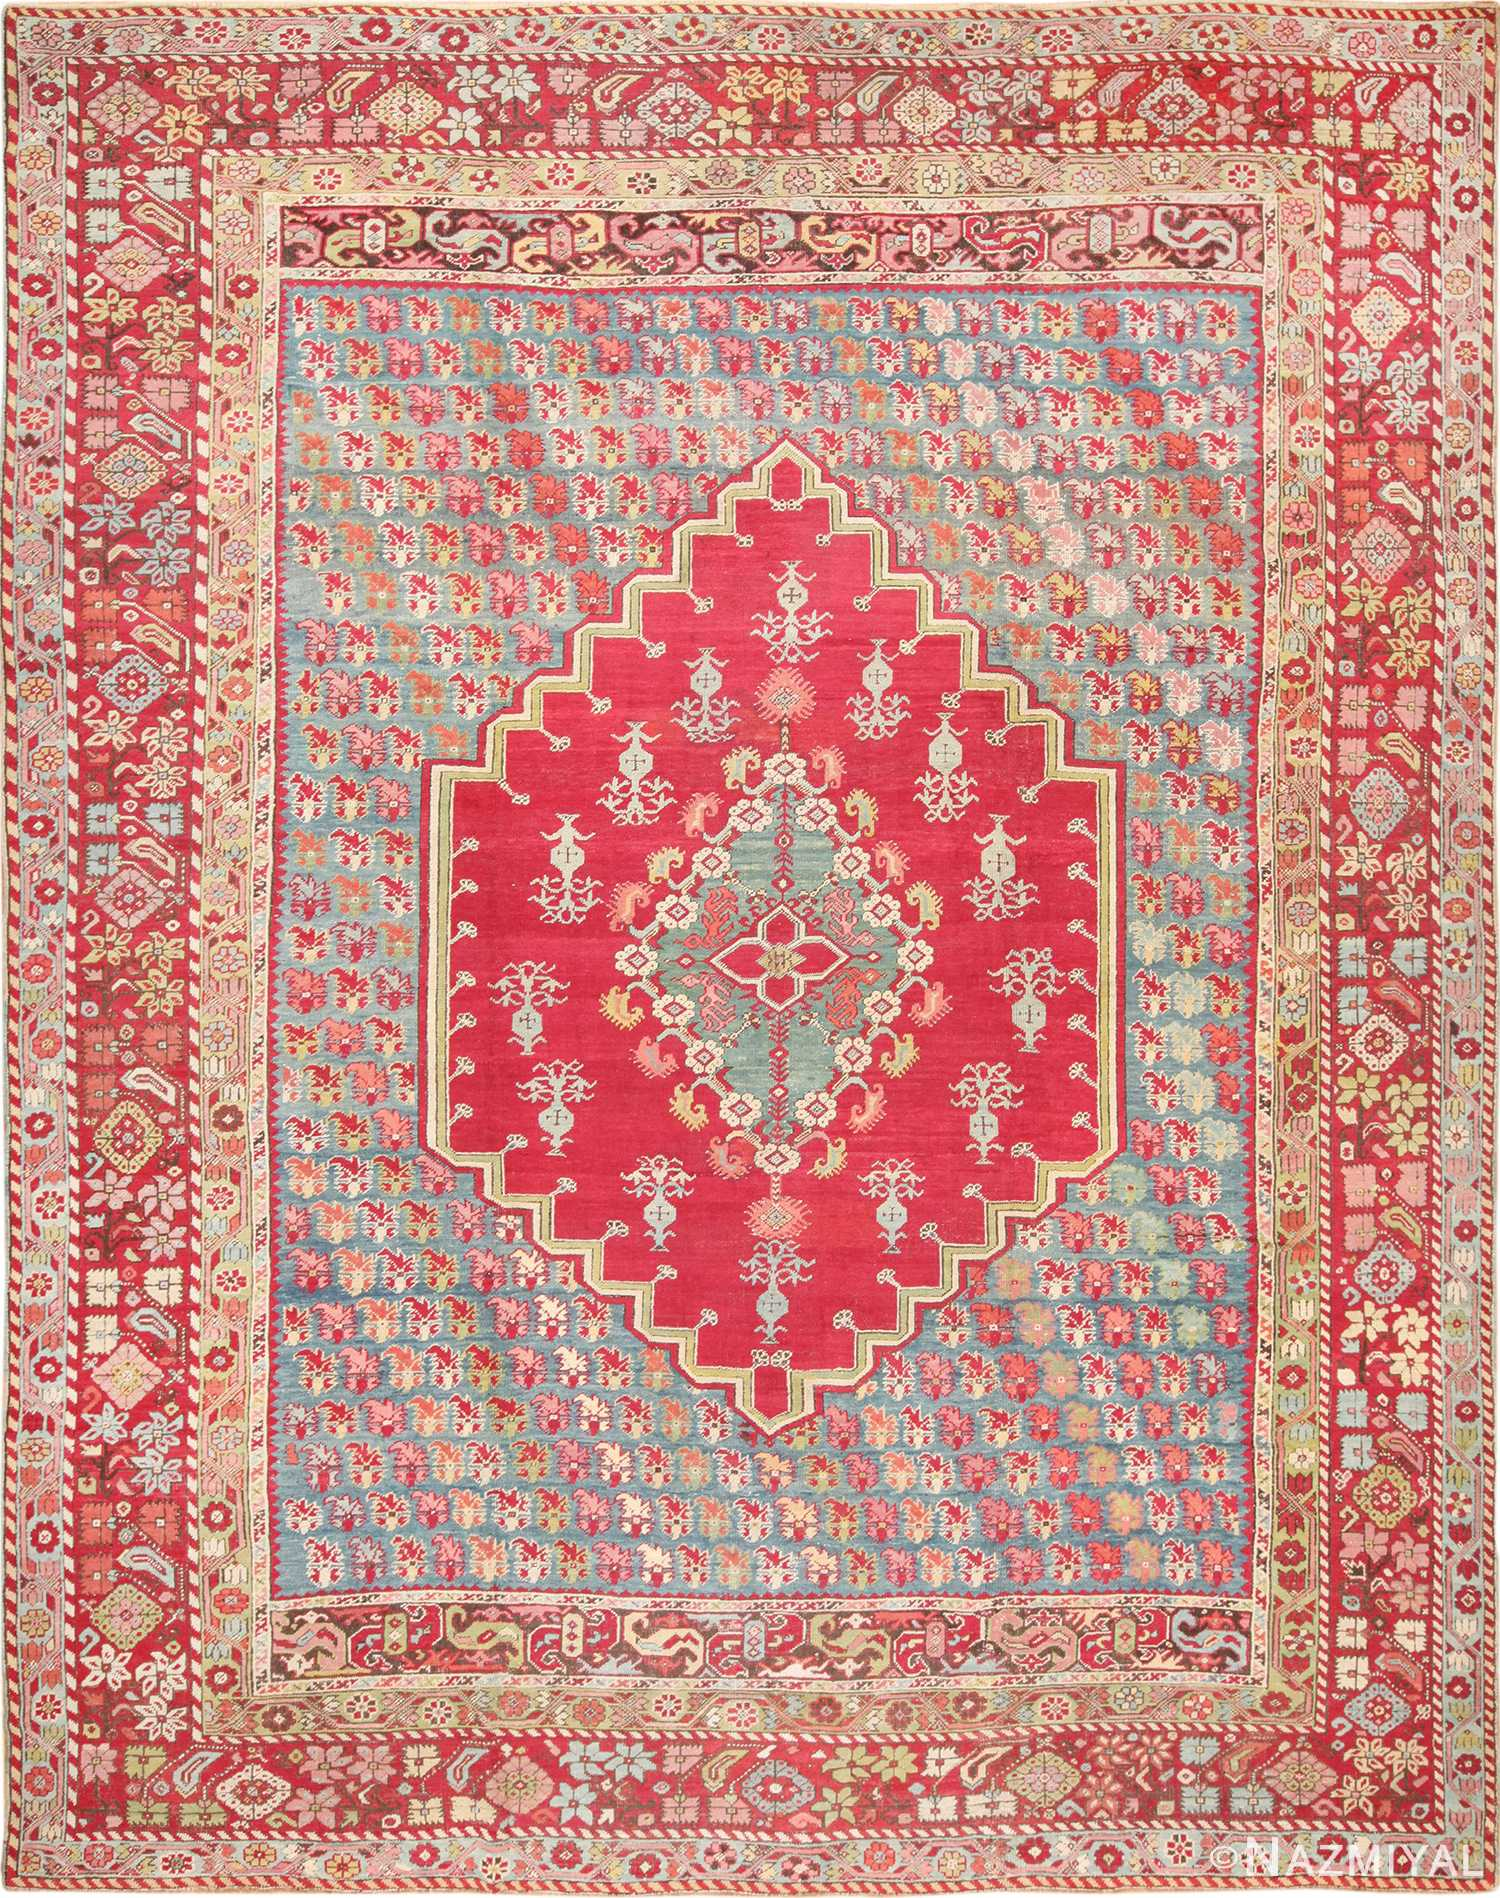 Happy and Colorful Room Size Antique Turkish Ghiordes Rug 49657 by Nazmiyal